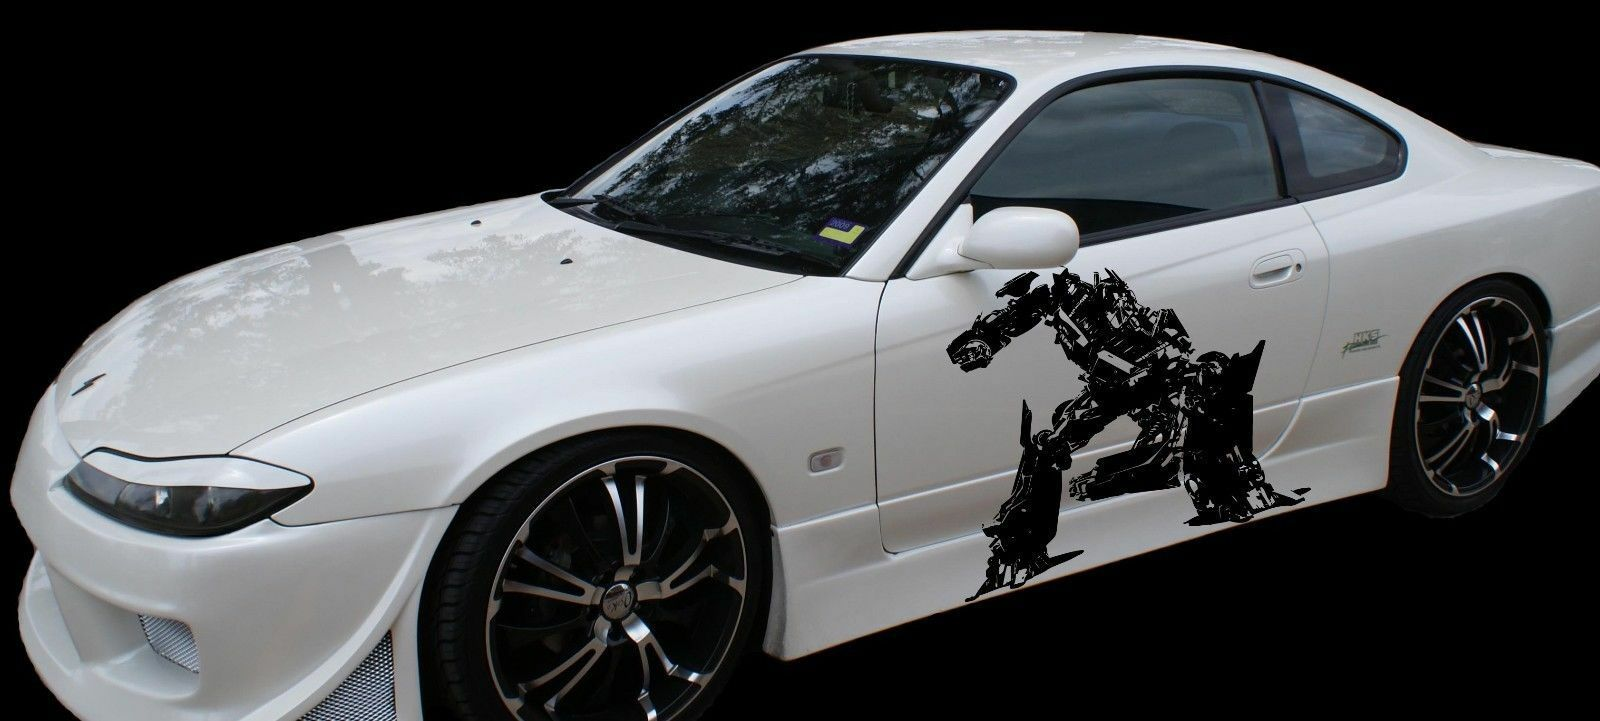 Best car sticker design - Transformer Car Sticker